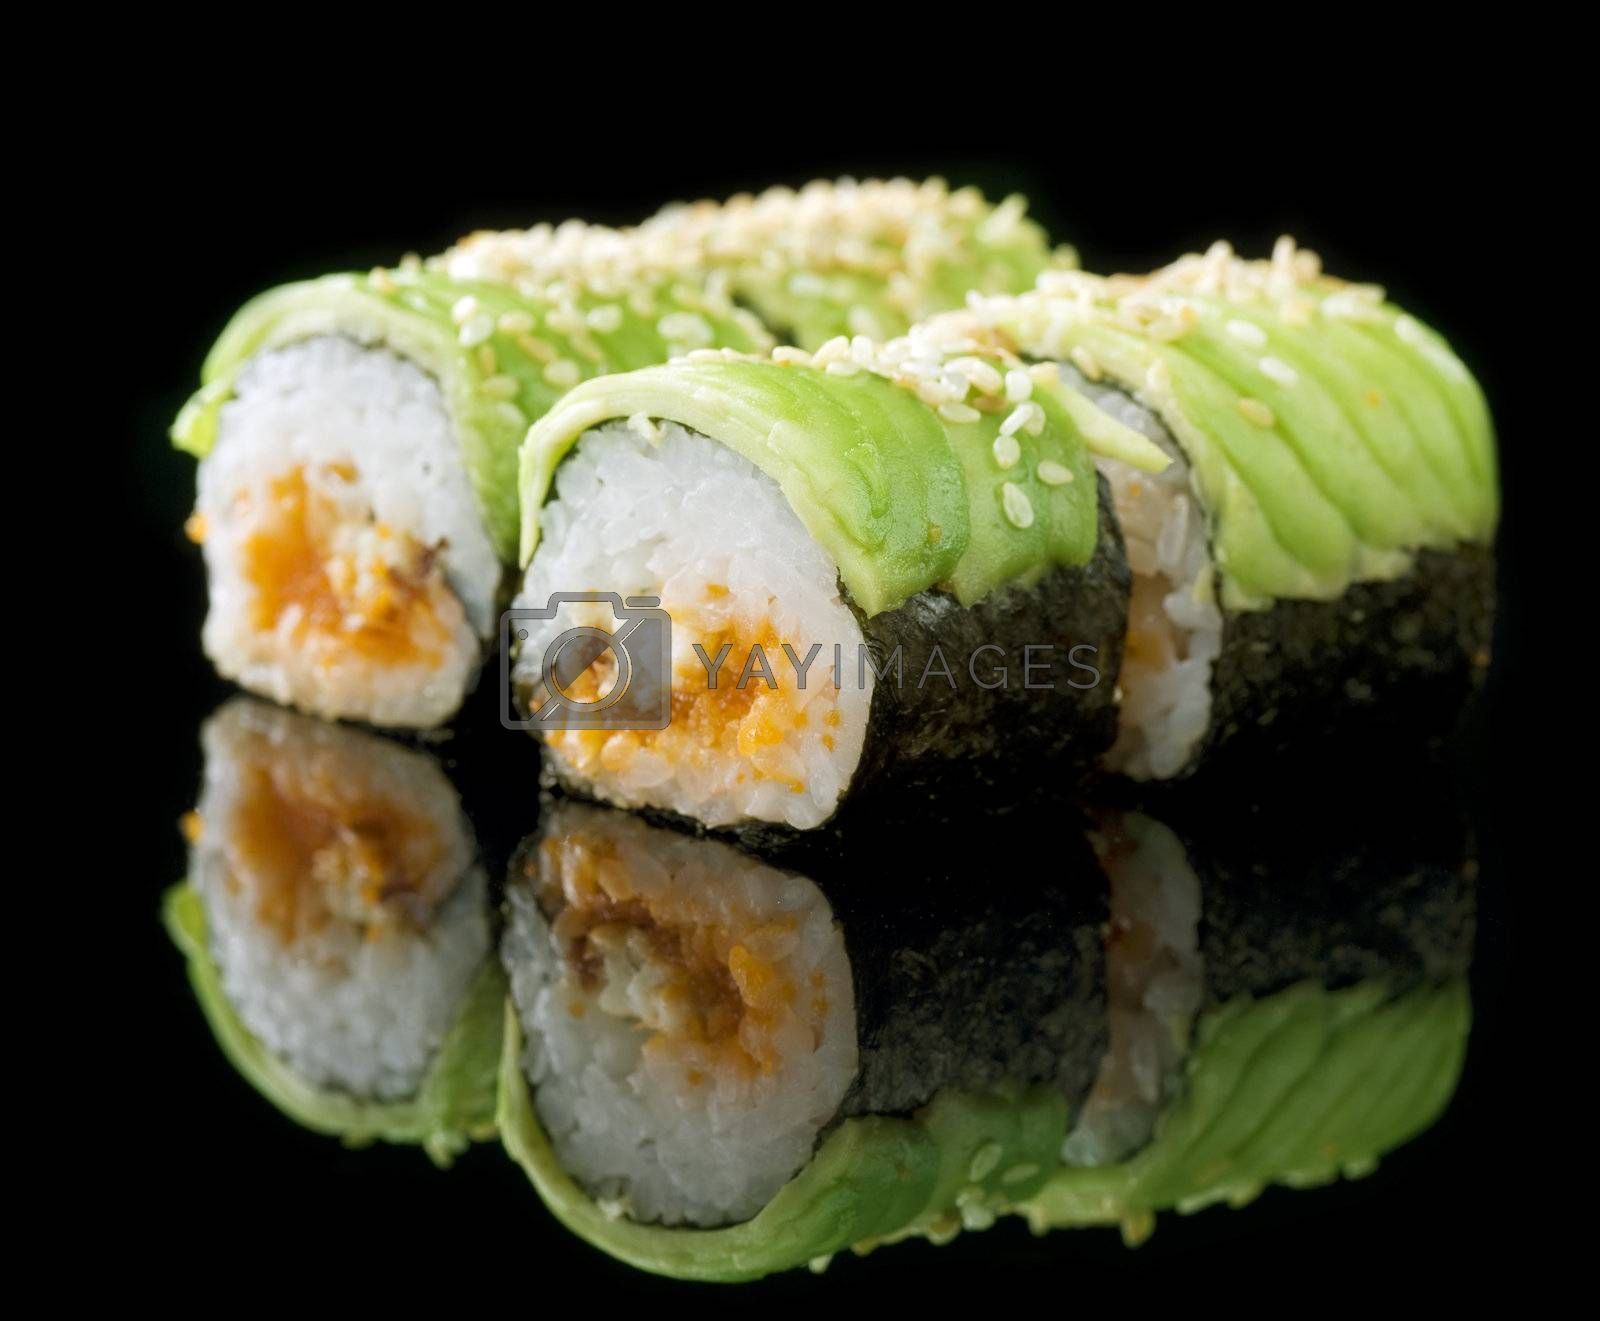 Sushi Rolls Over Black by Subbotina Anna